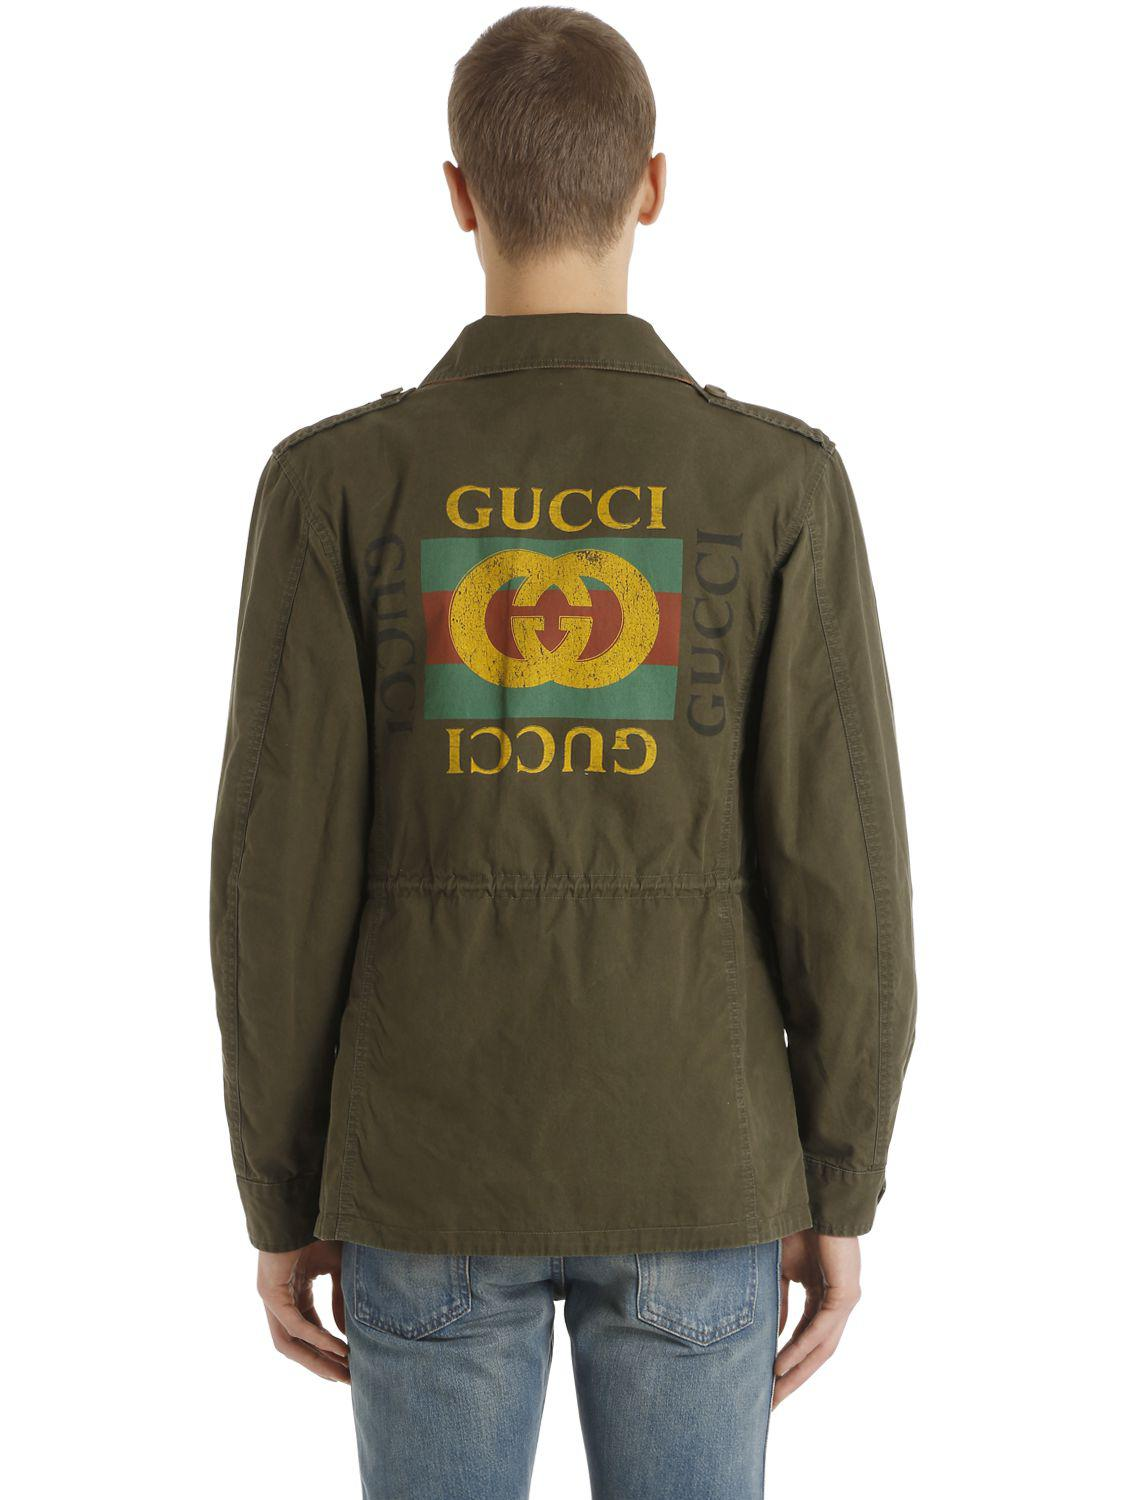 4ee878c27f3a Gucci Mens Clothing Lyst